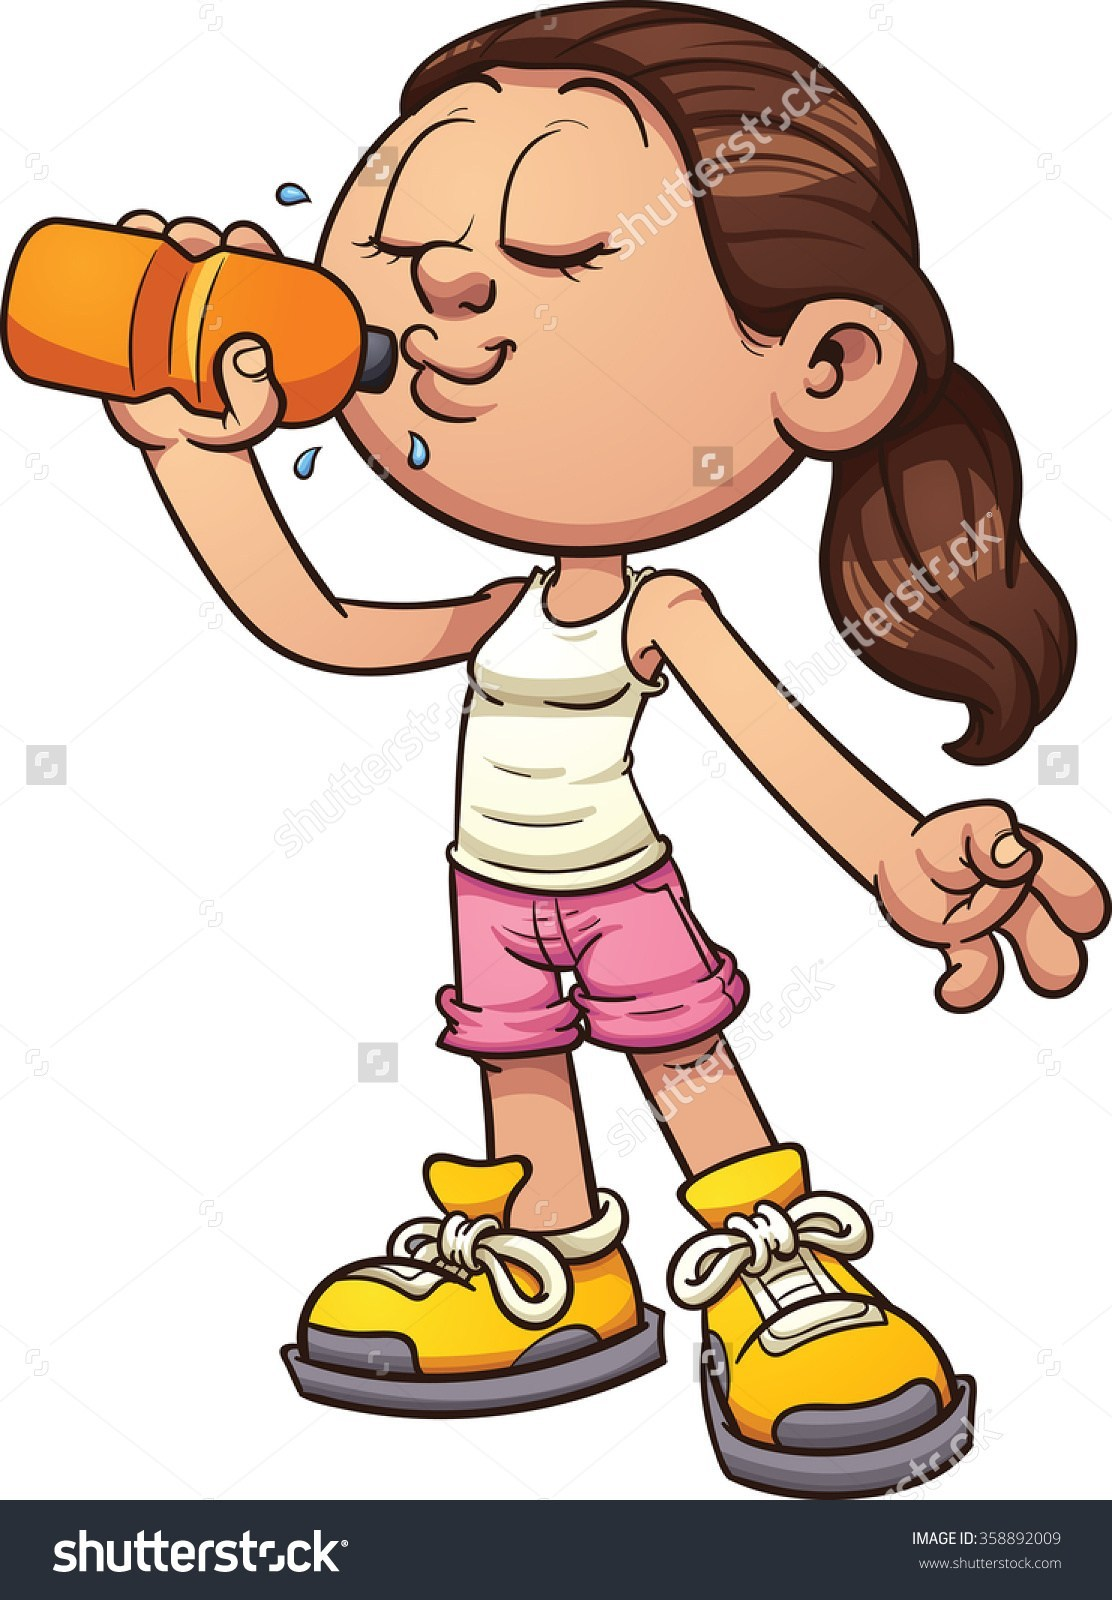 Drink clipart kid drink. Juice pencil and in